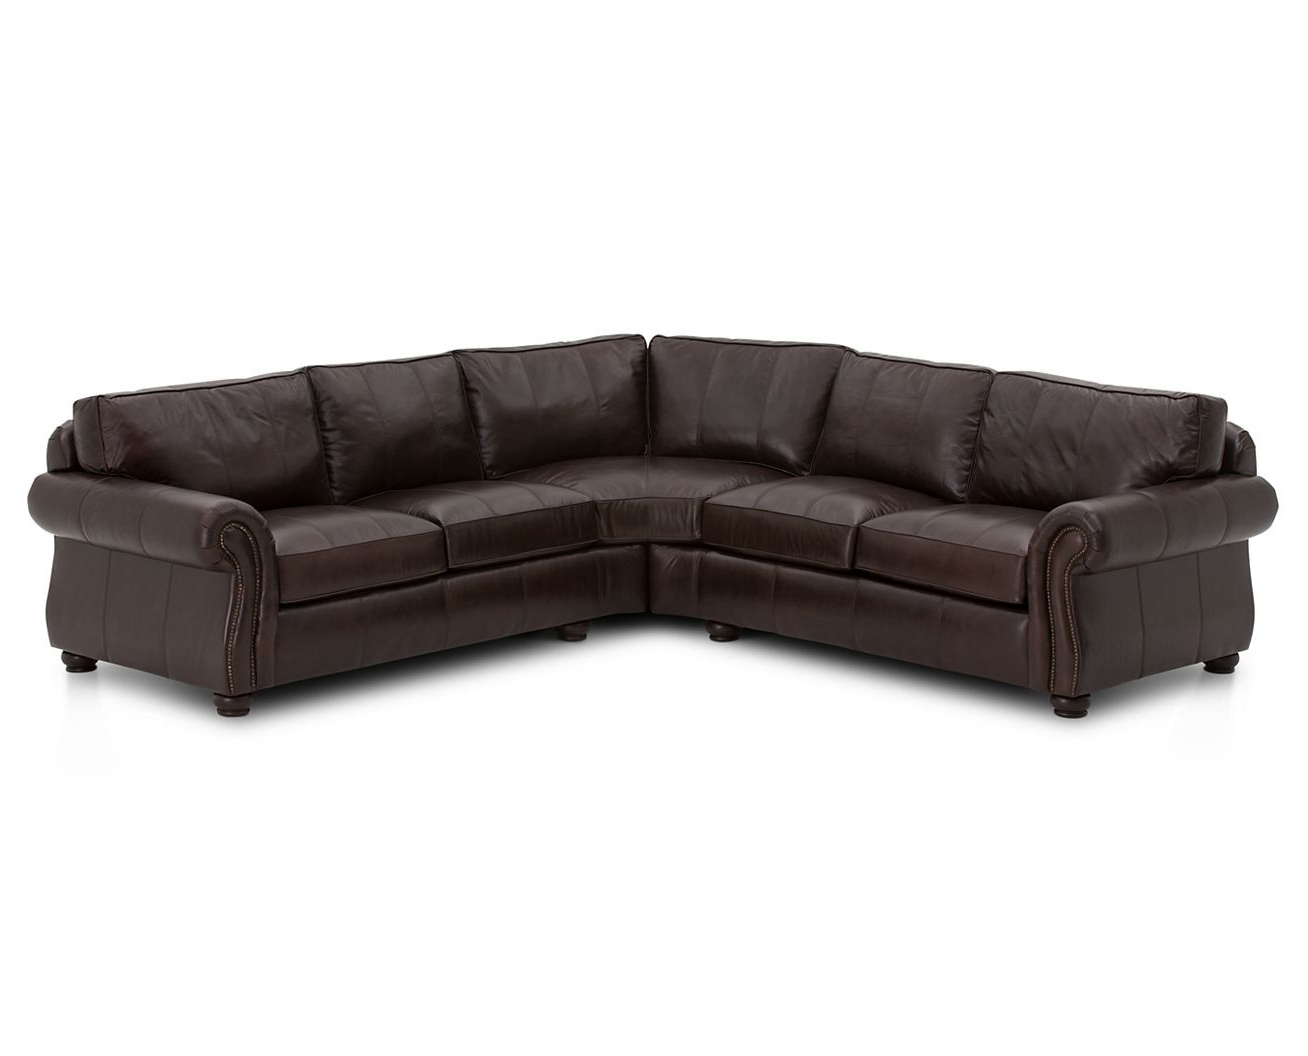 2017 Furniture Row Sectional Sofas For Furniture Row Sectionals (View 1 of 15)